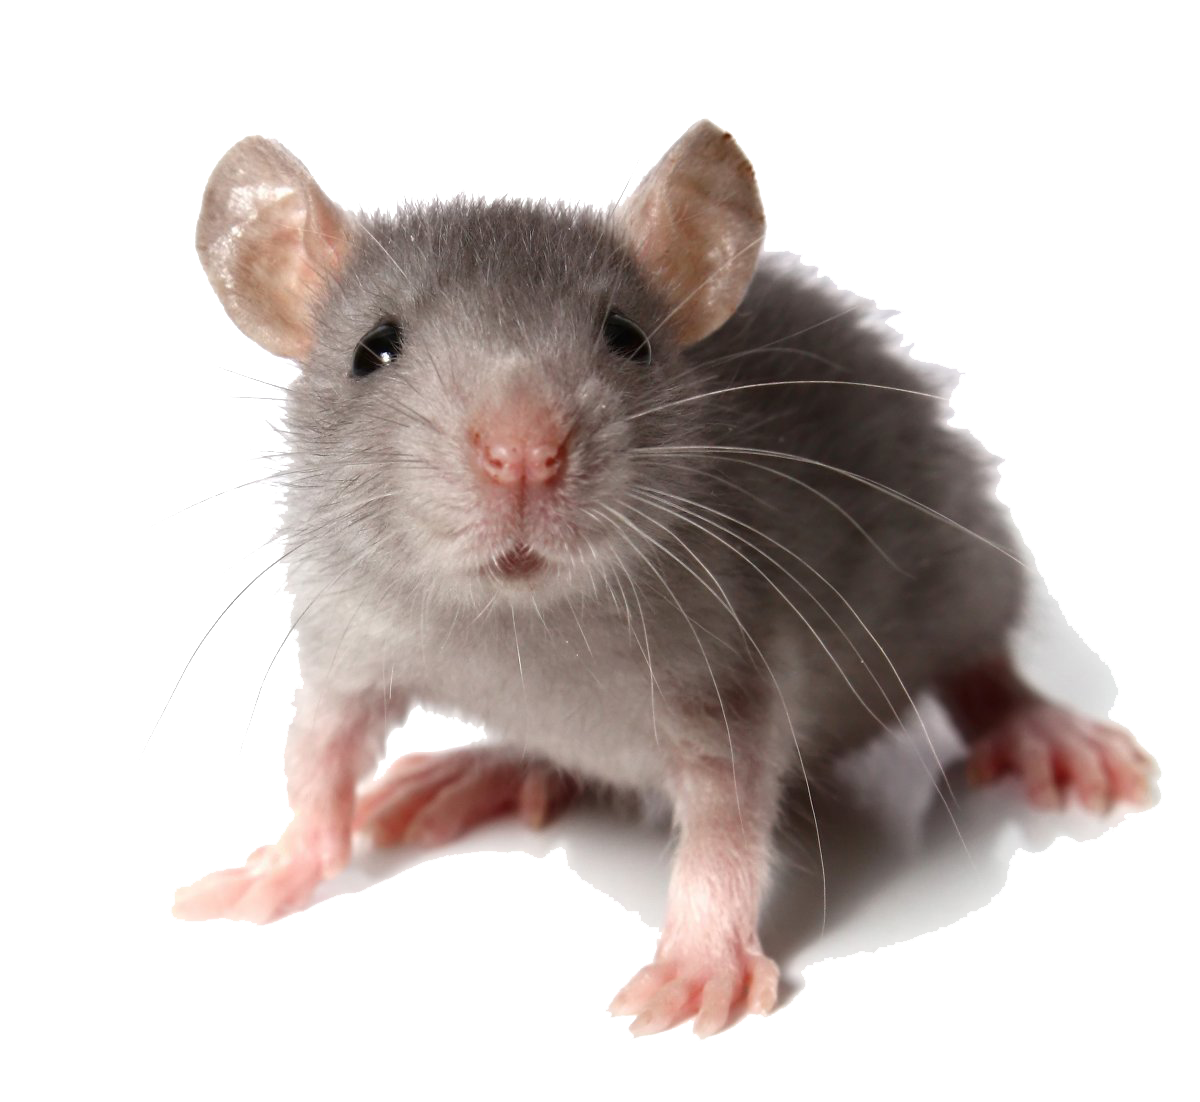 Mouse Animal (Mice) PNG Transparent Images.